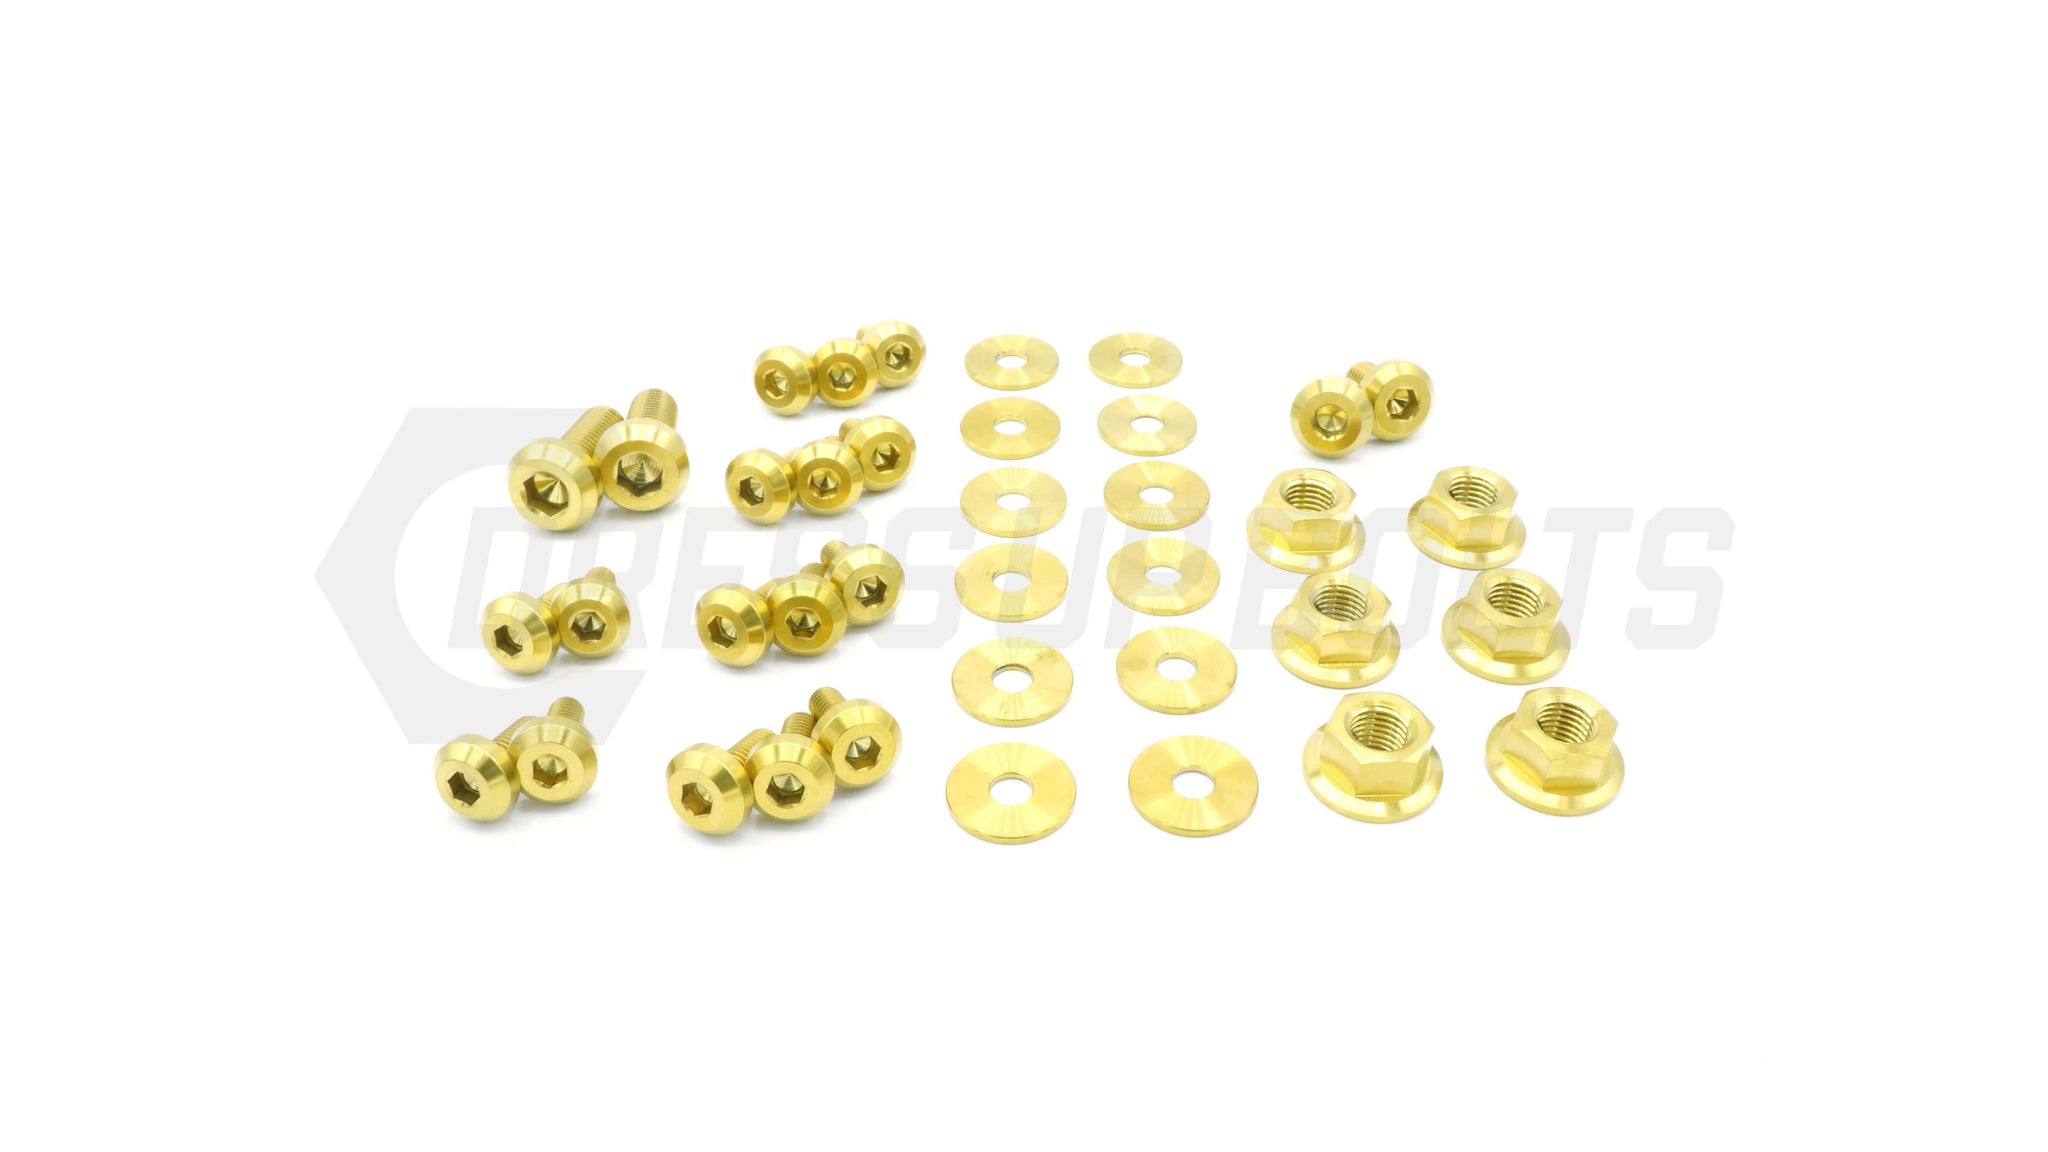 Mitsubishi Evo VIII (2003-2005) Titanium Dress Up Bolts Partial Engine Bay Kit - DressUpBolts.com